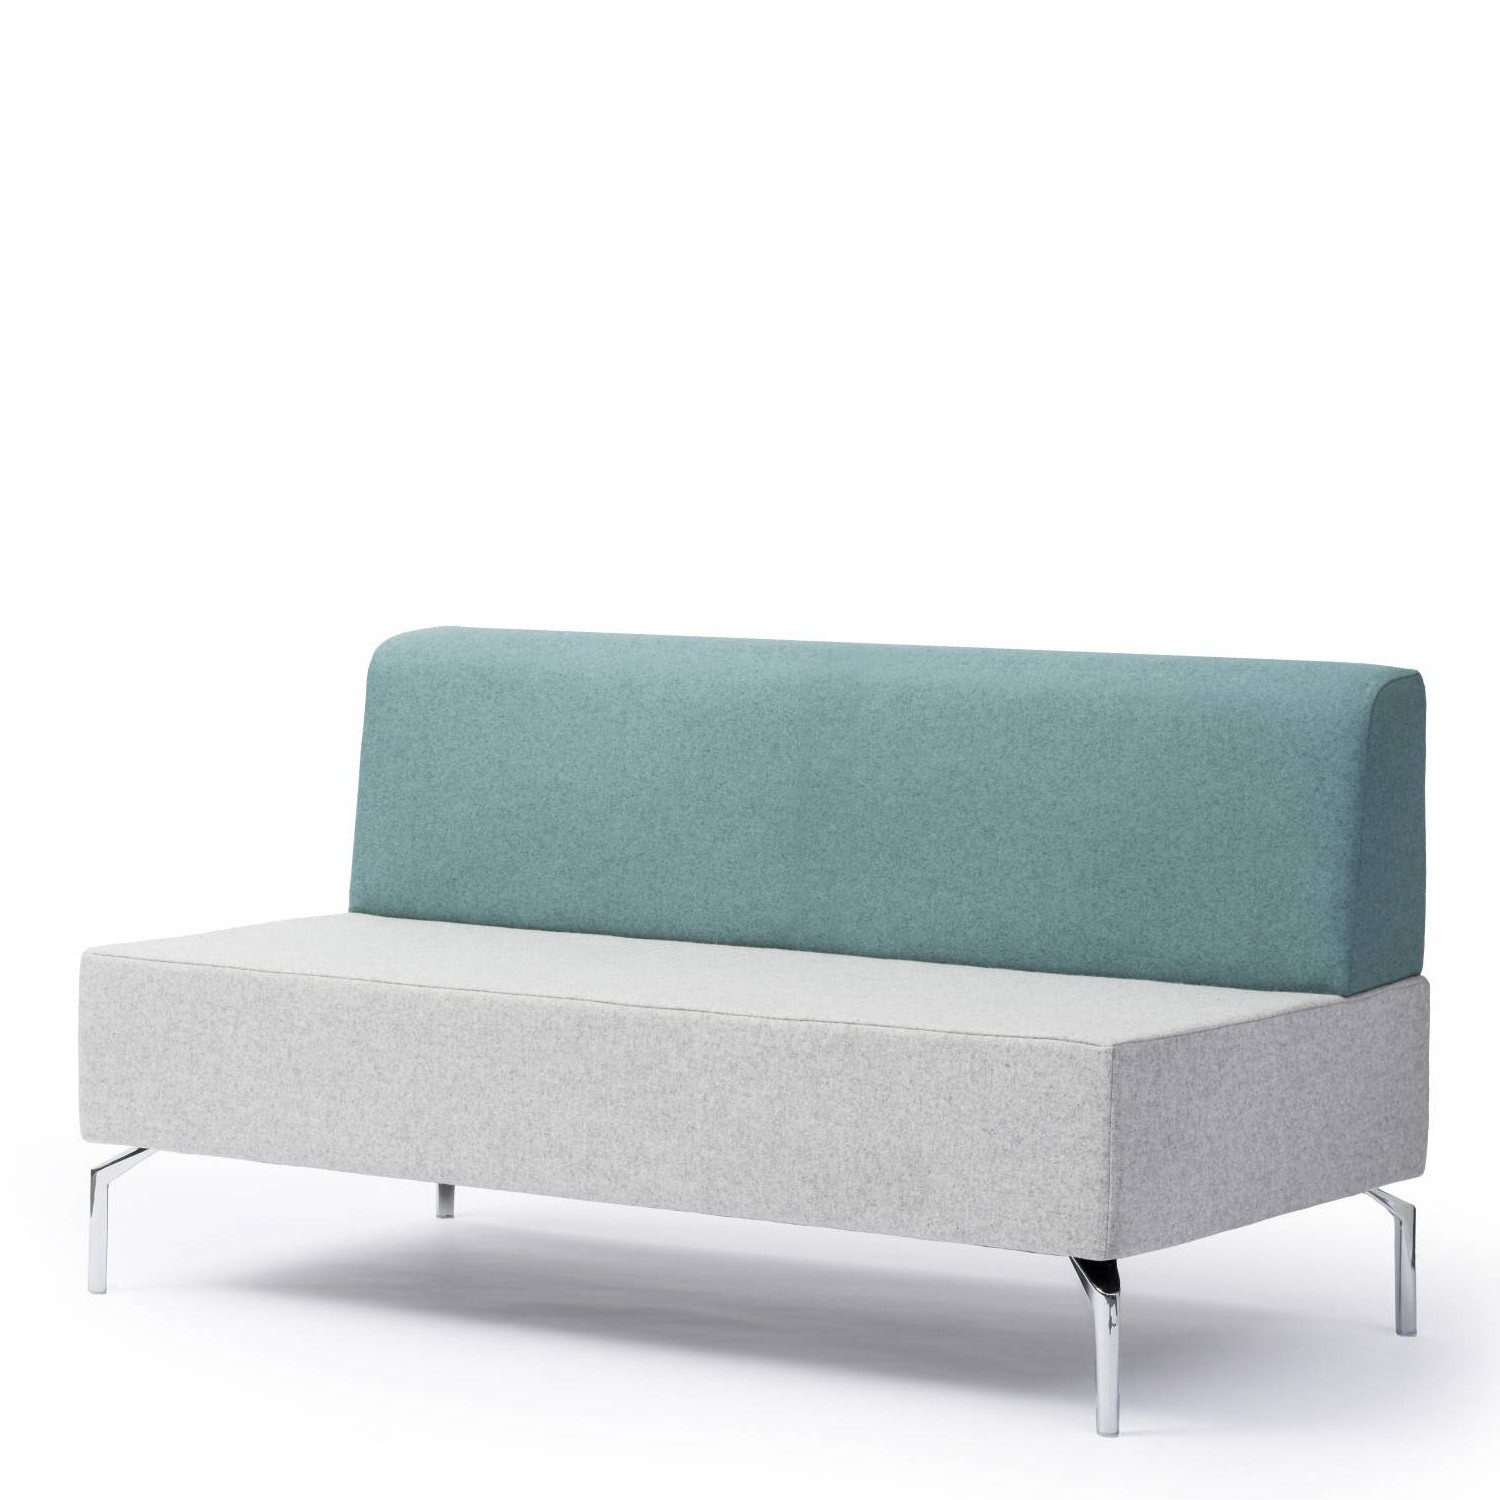 Skyline Moular Sofa